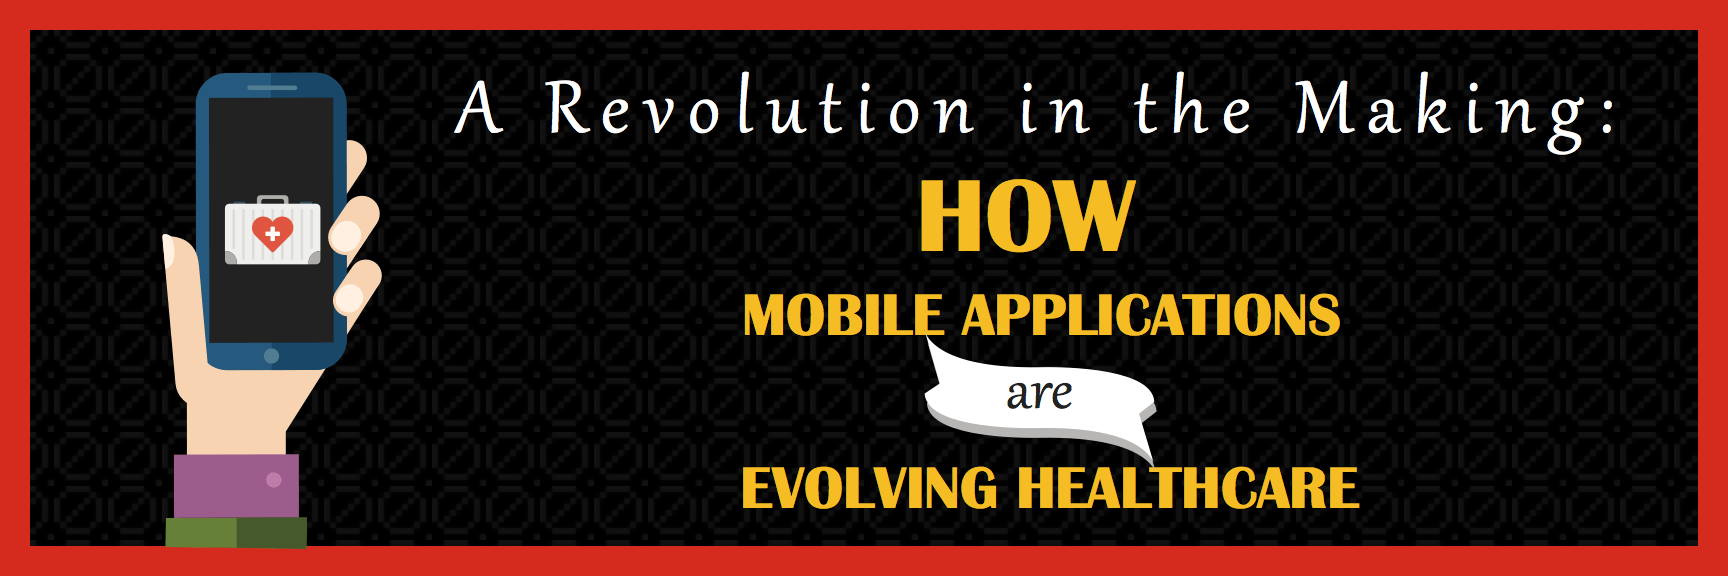 mobile apps and healthcare